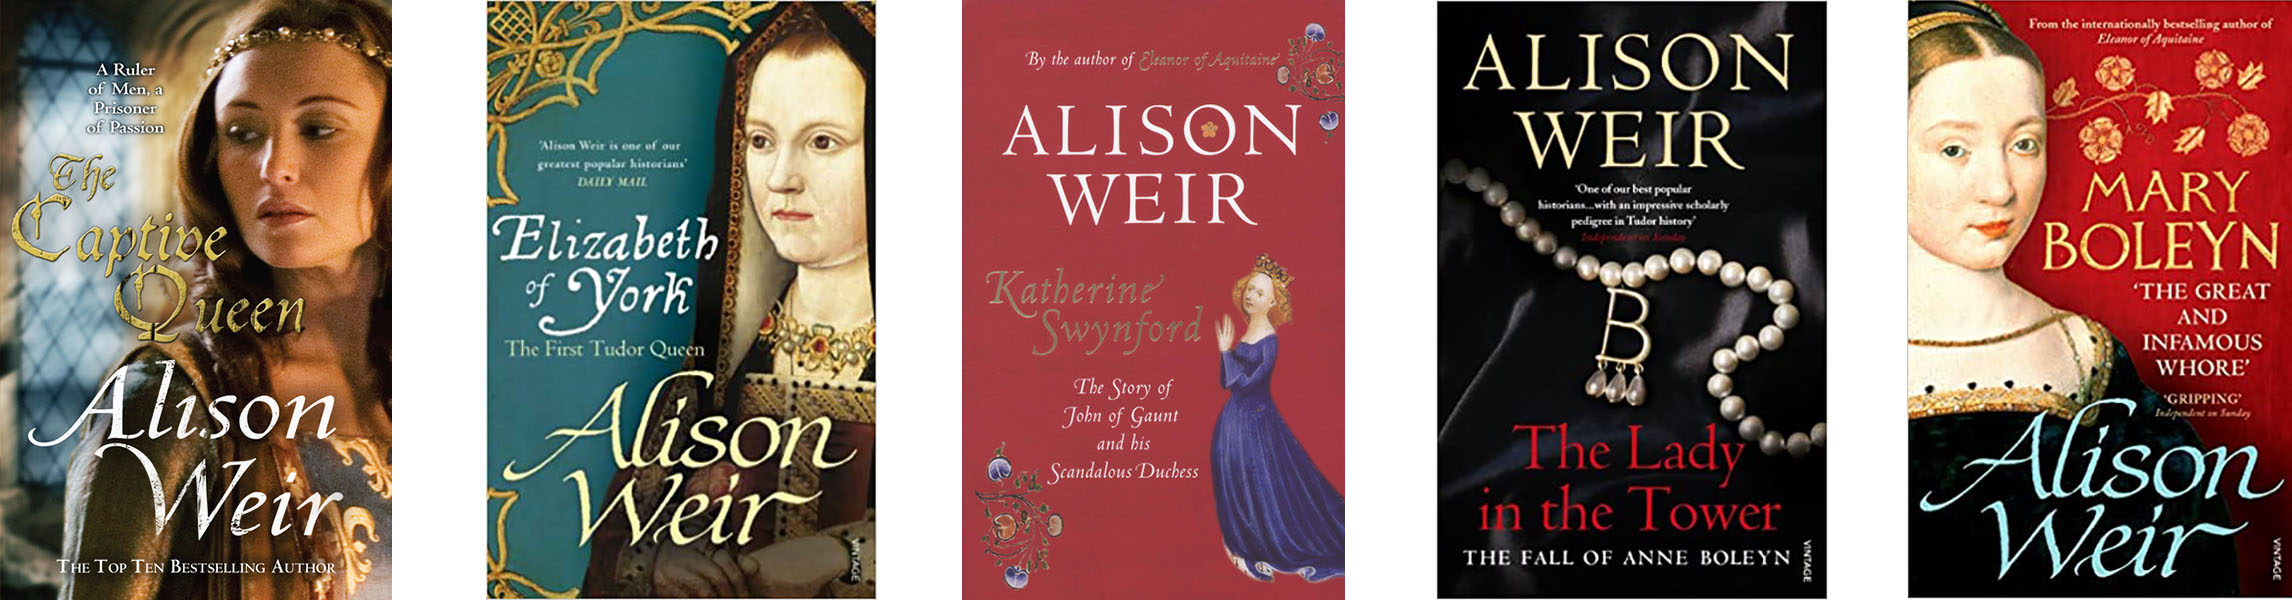 Image shows covers by Alison Weir